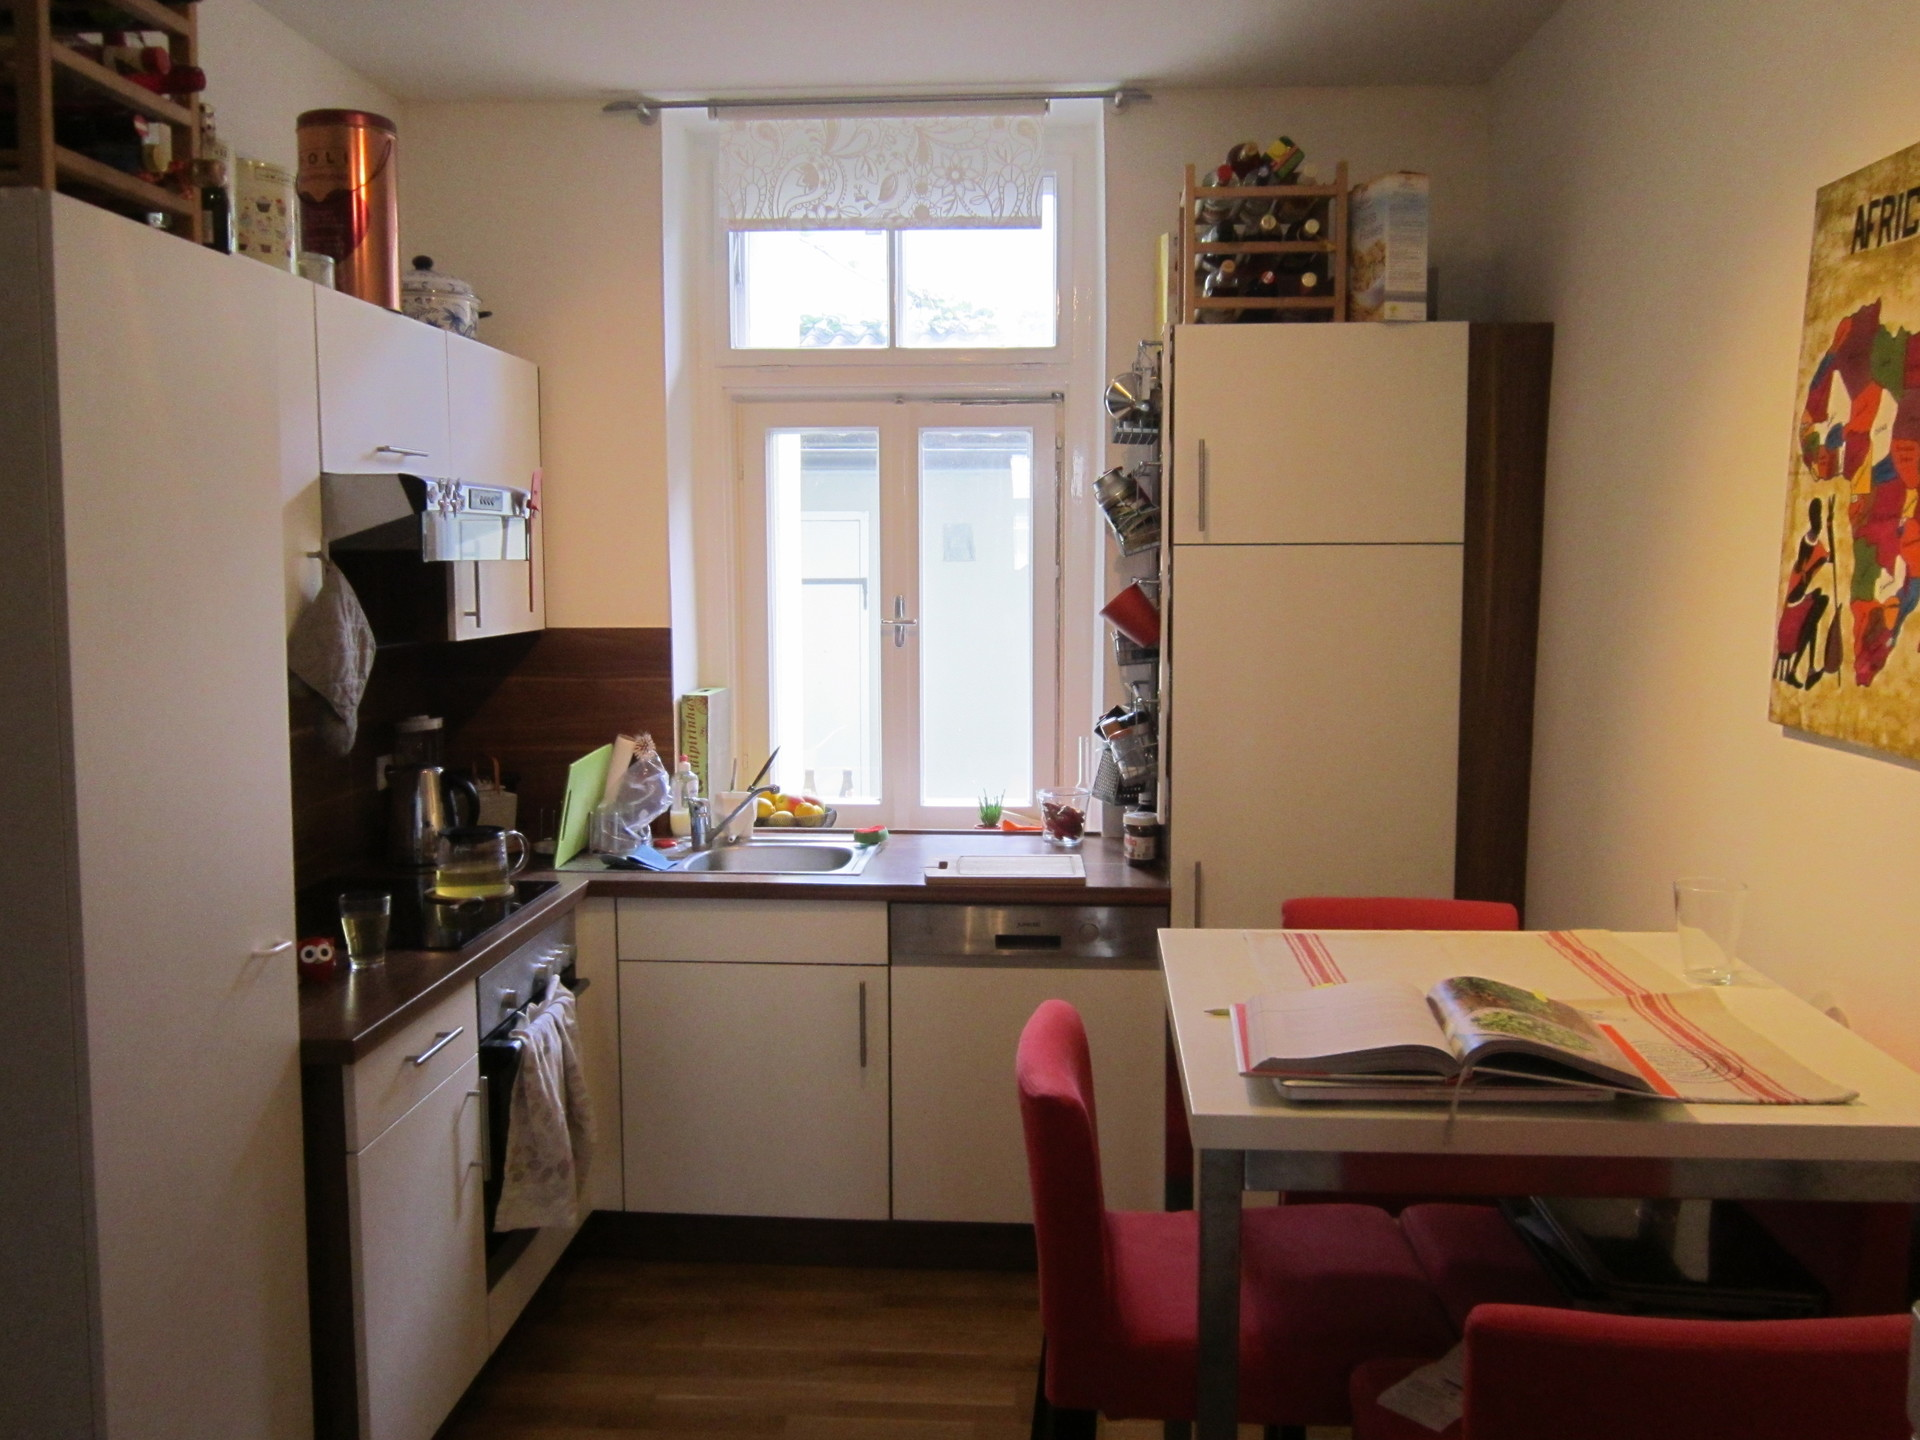 Great ... Fully Furnished Room In Shared Flat To Rent From January To The ...